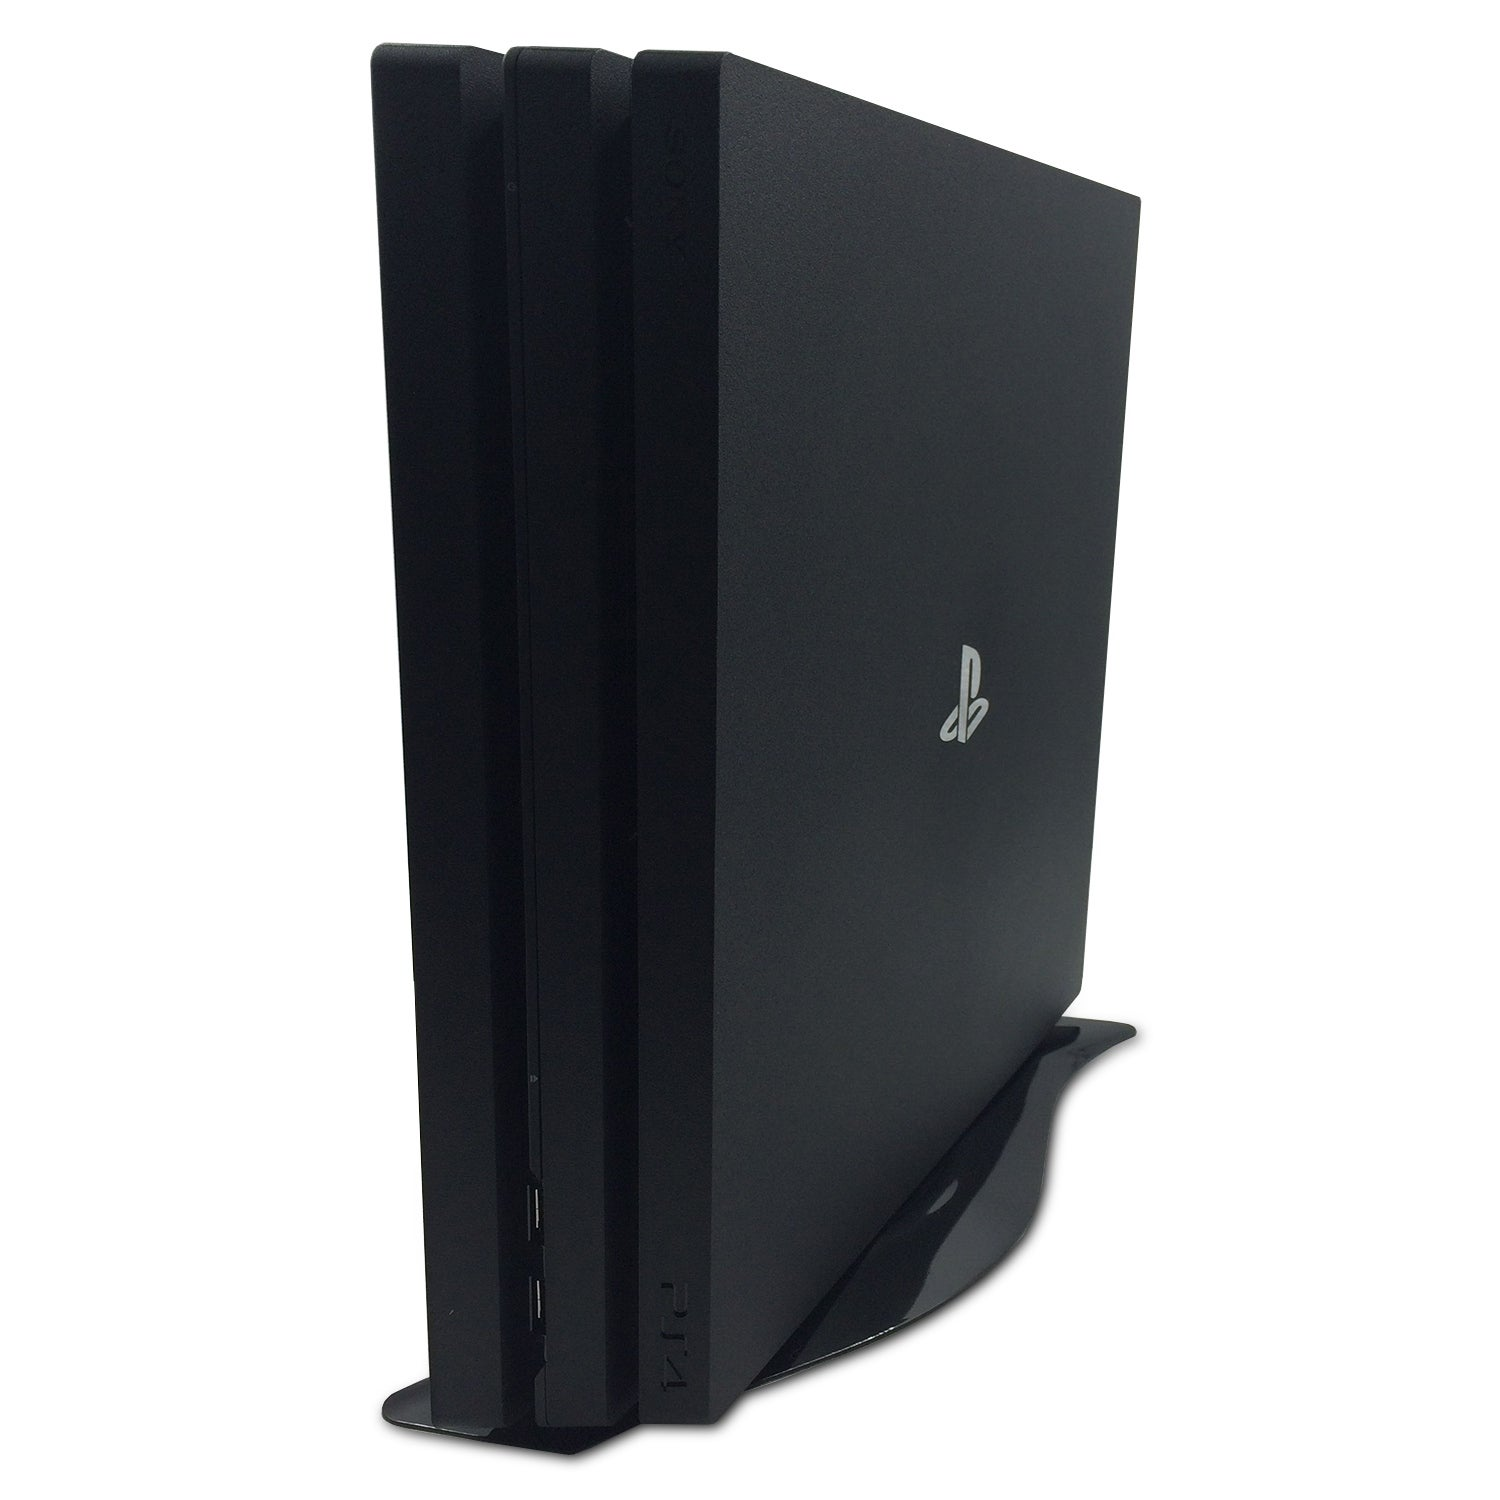 Sony PlayStation 4 PS4 Slim Vertical Stand Strong Sturdy Robust Build